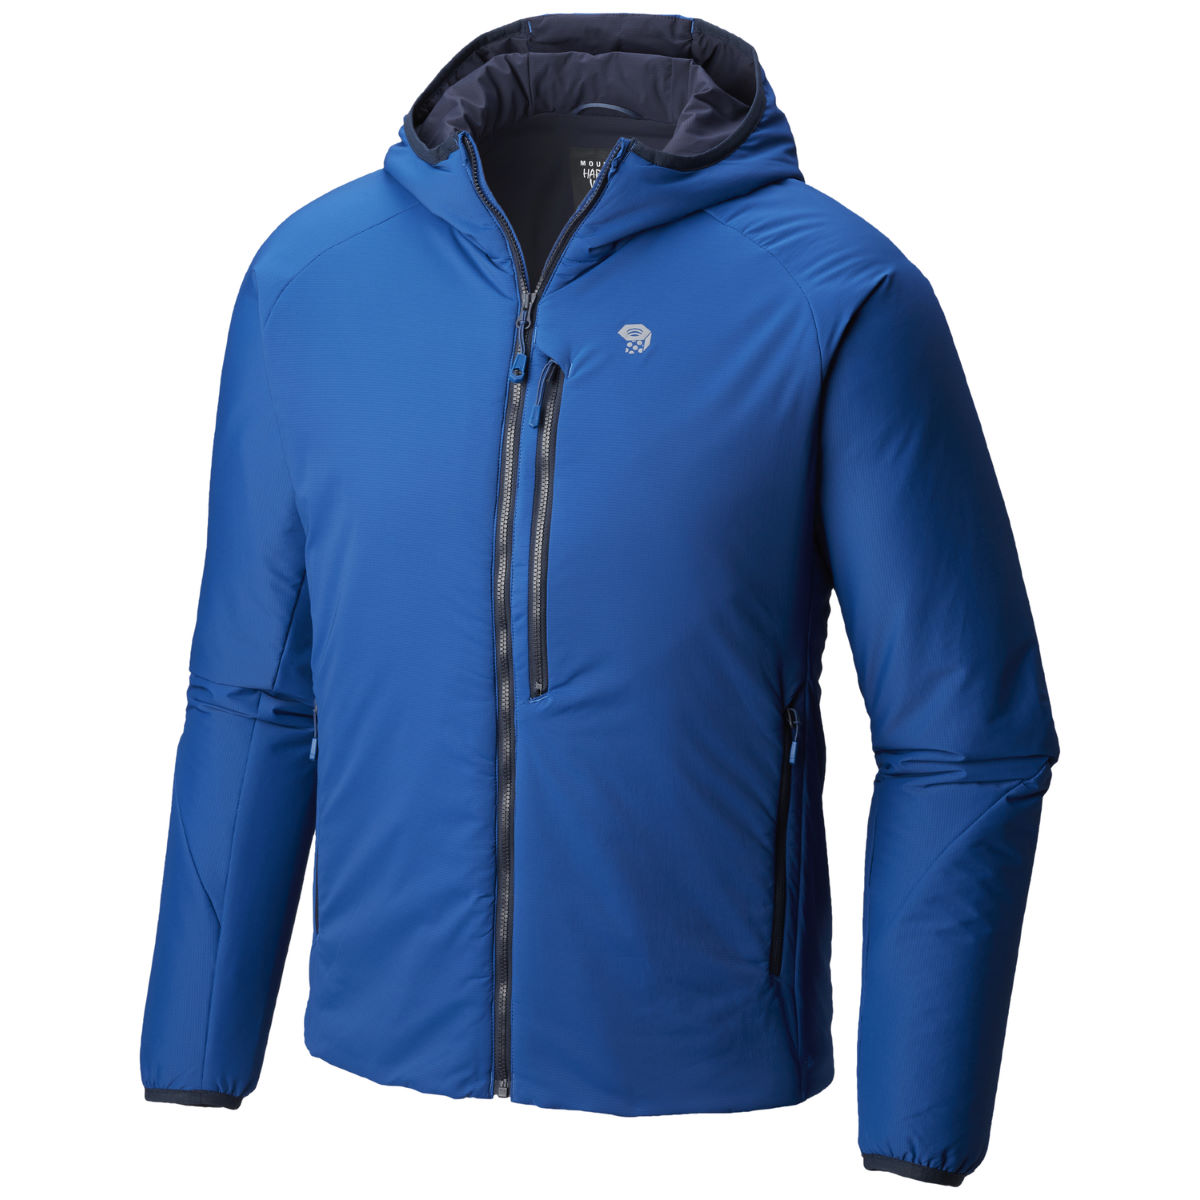 Mountain Hardwear Mountain Hardwear Kor Strata™ Hoody:Red:2XL   Jackets